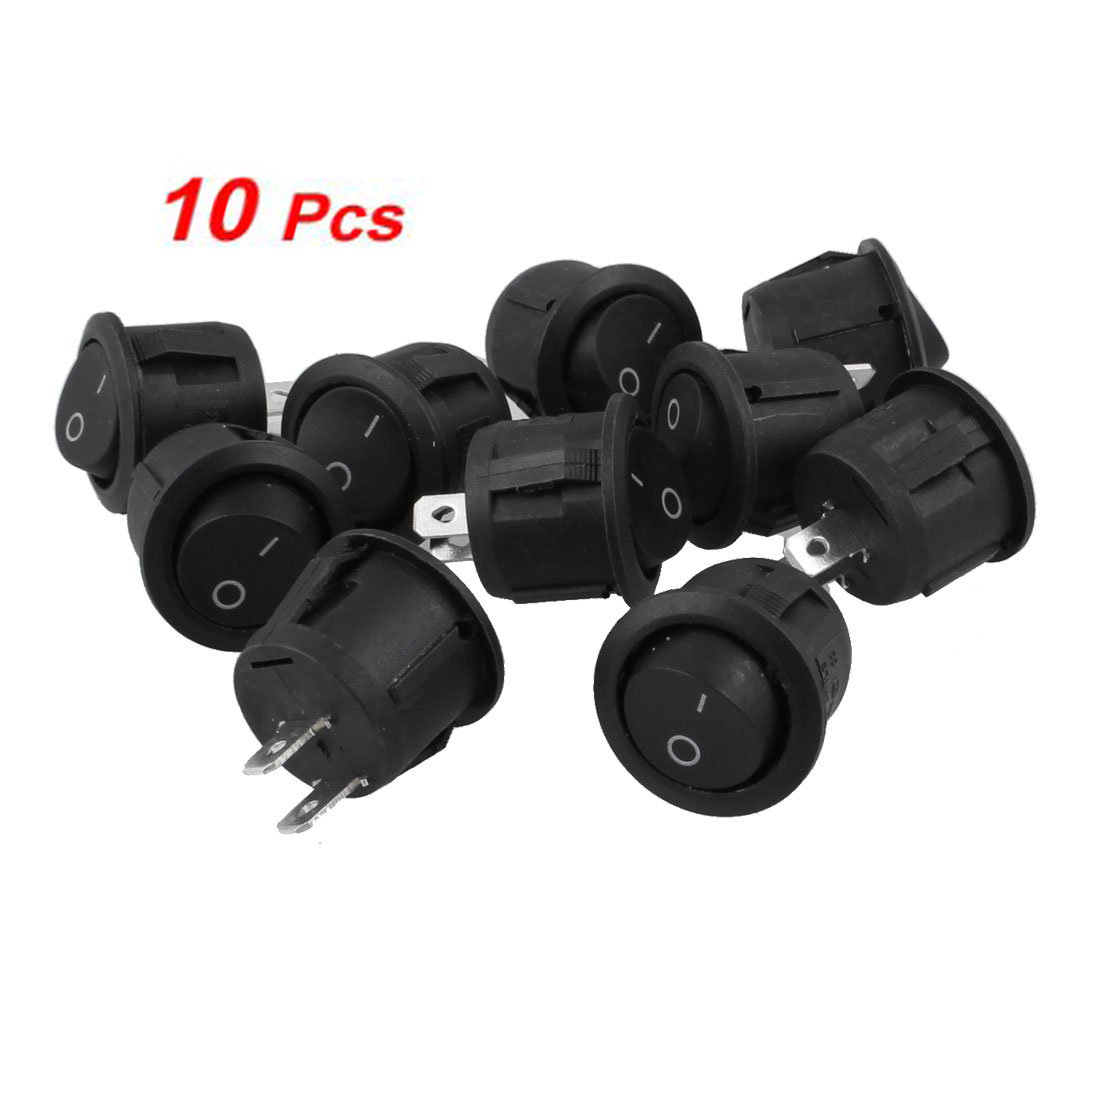 Promotion! 10Pcs AC 6A 10A 250V On Off Snap in SPST Round Boat Rocker Switch Black